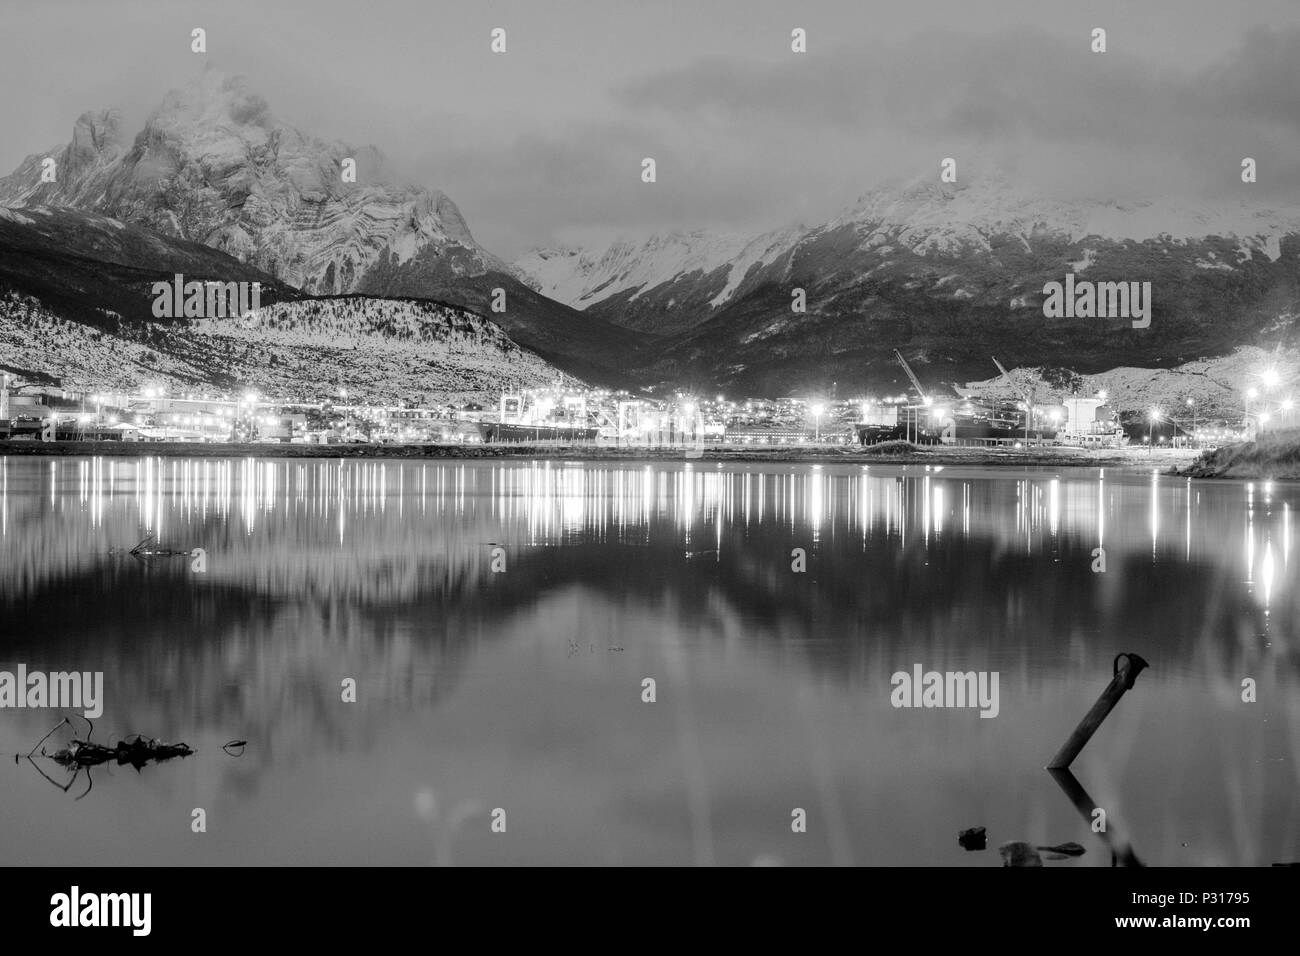 Monte Olivia and nearby mountains look down on the city lights of Ushuaia in the evening. The snow reaches the city and shows winter has started. - Stock Image